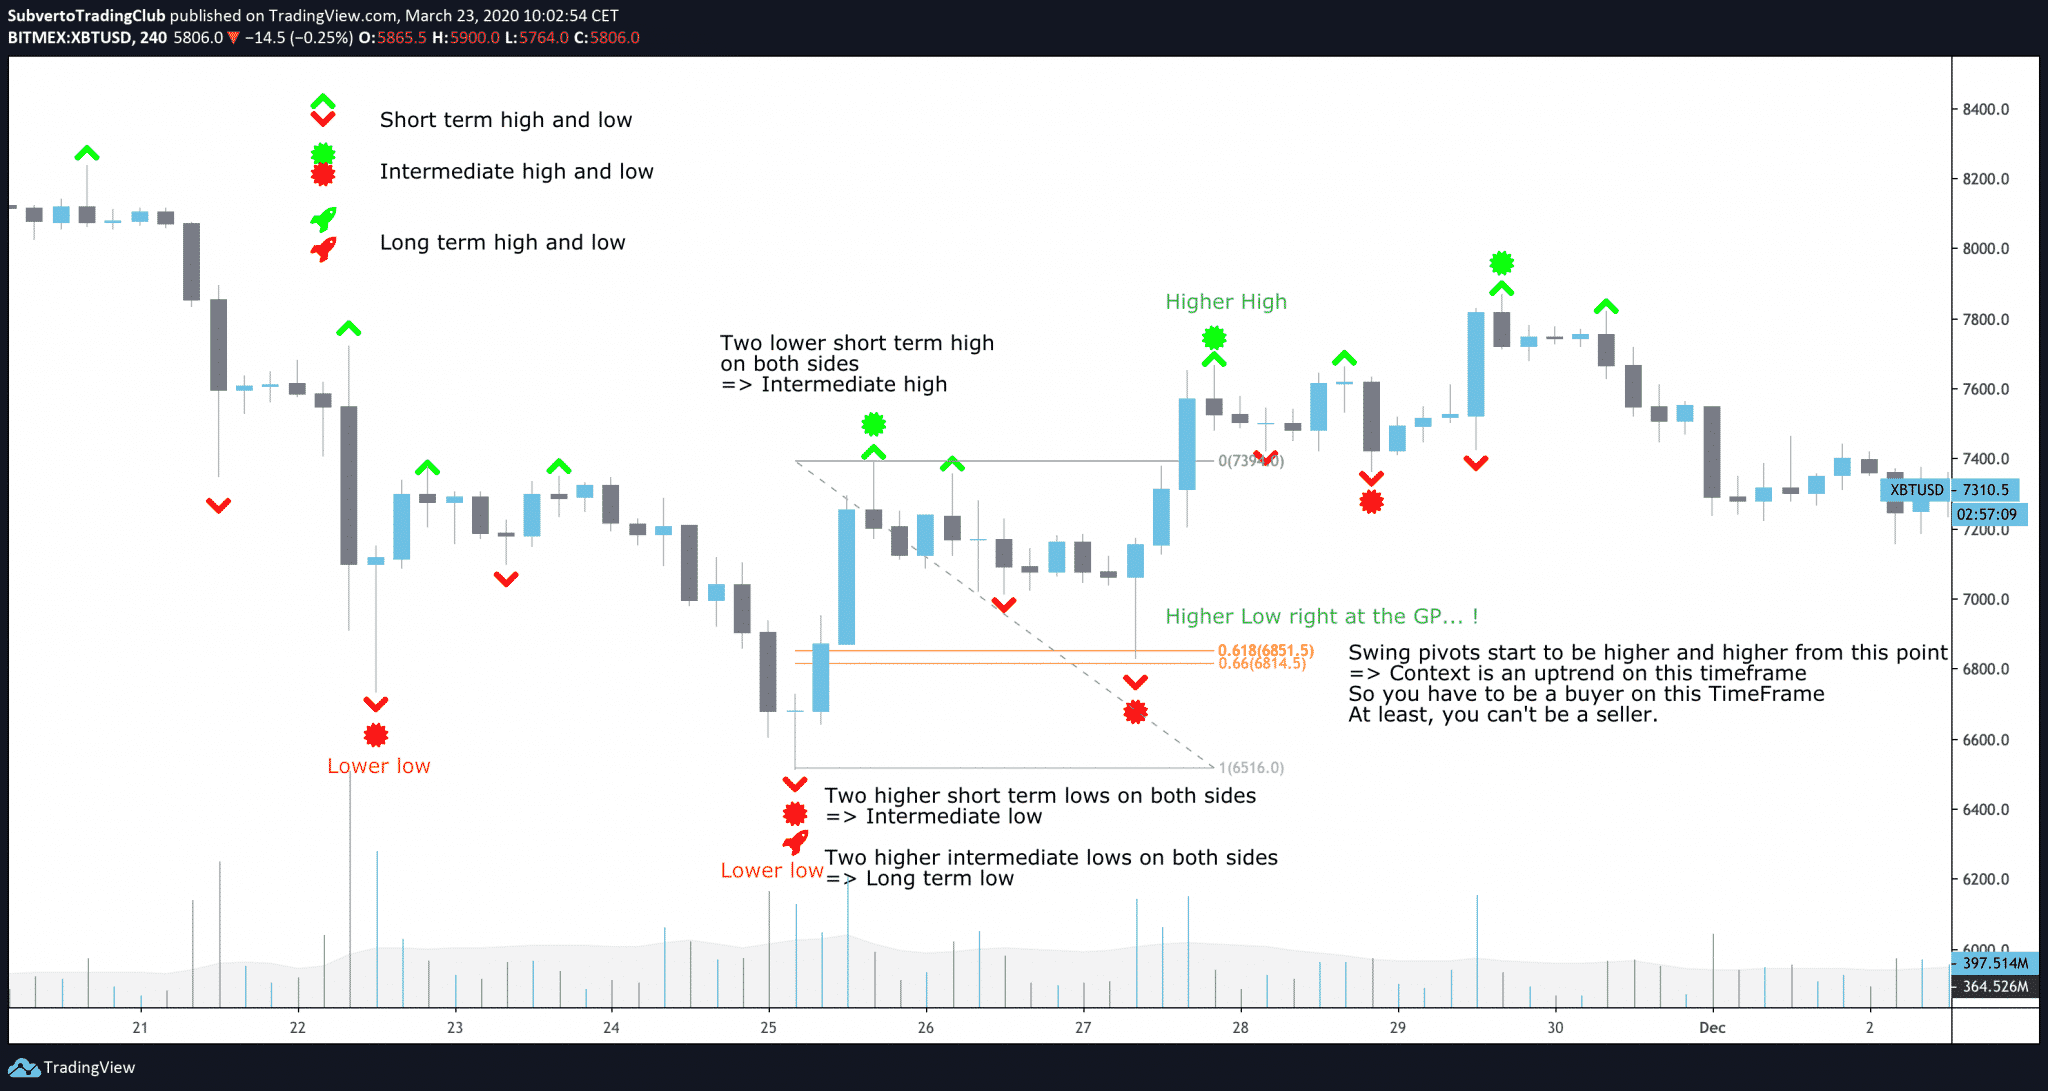 Trade pullbacks to the Golden pocket creating a higher low on the H4